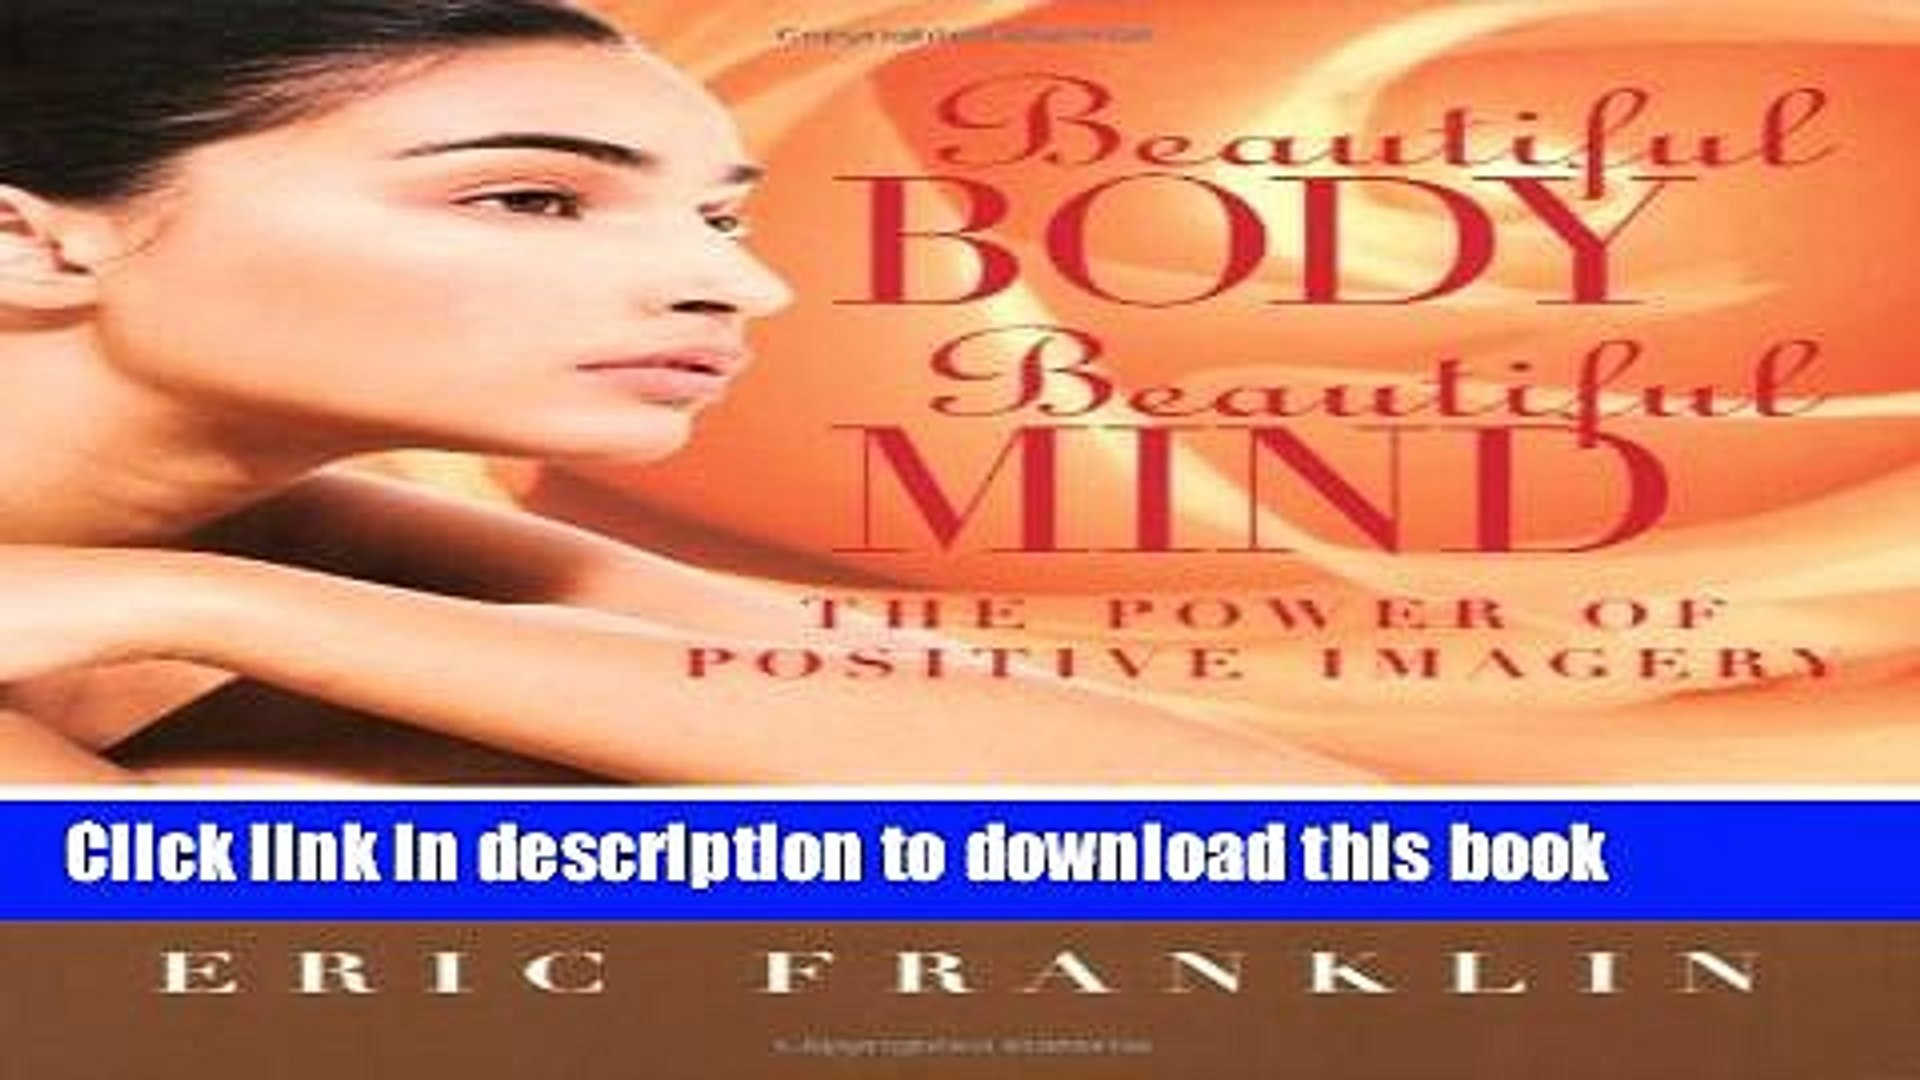 Read Beautiful Body, Beautiful Mind: The Power of Positive Imagery: Over 80 Exercises and a 10-Day